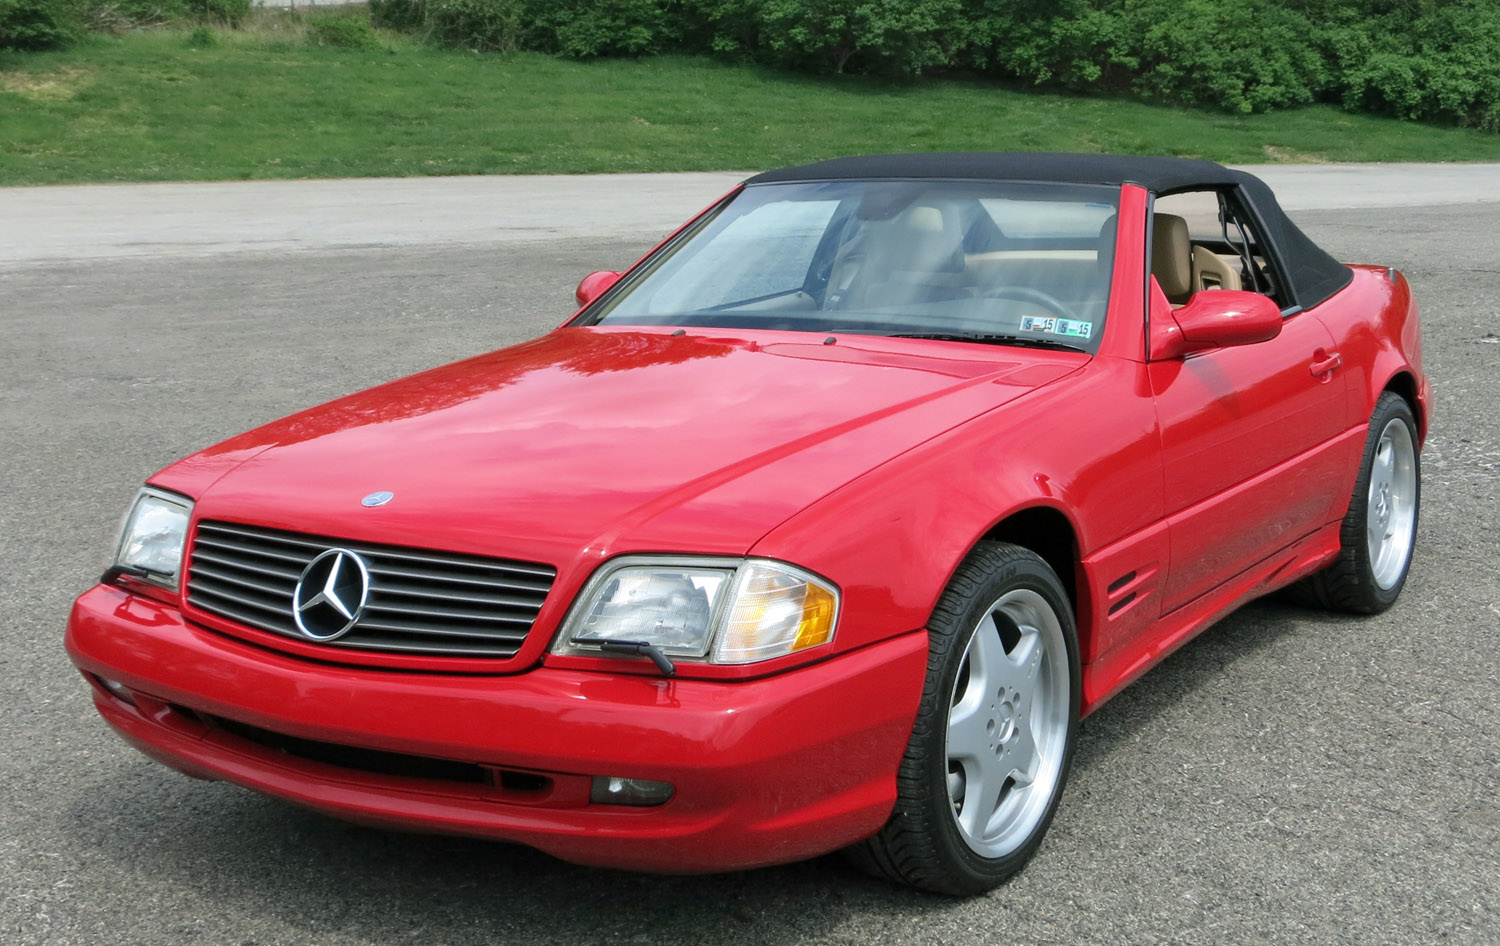 2001 Mercedes-Benz SL500